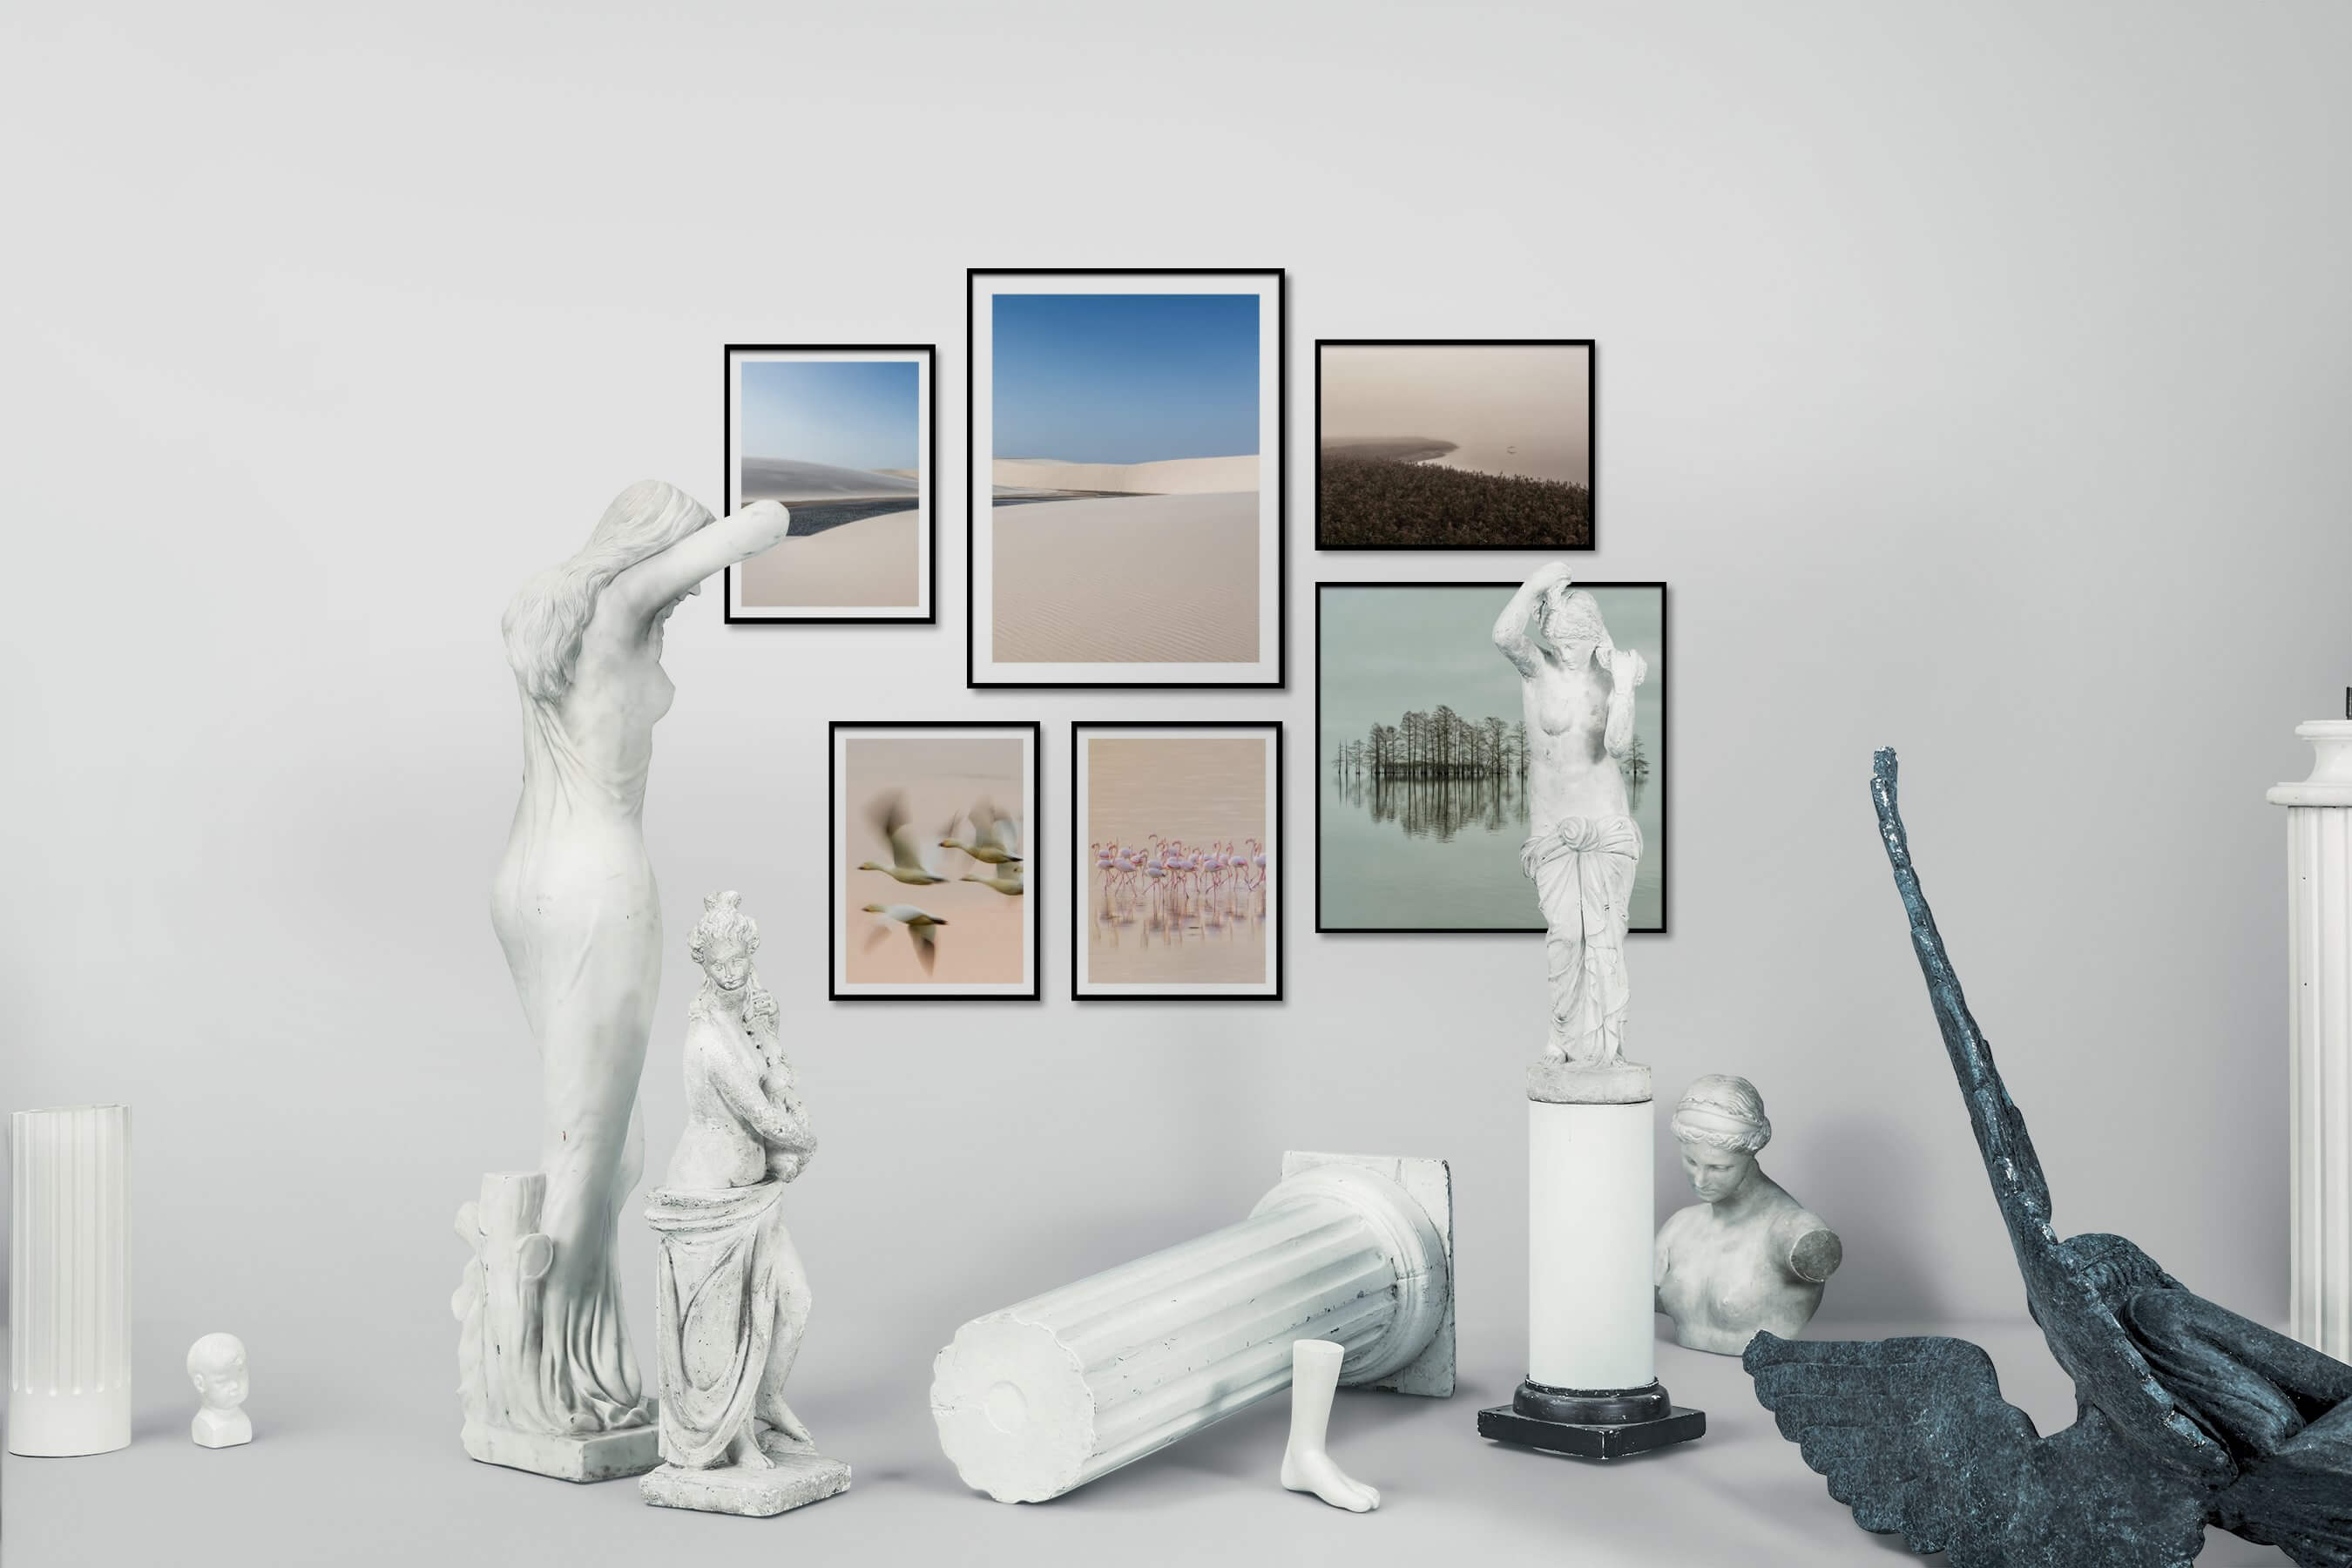 Gallery wall idea with six framed pictures arranged on a wall depicting For the Minimalist, Nature, Animals, Mindfulness, and Beach & Water